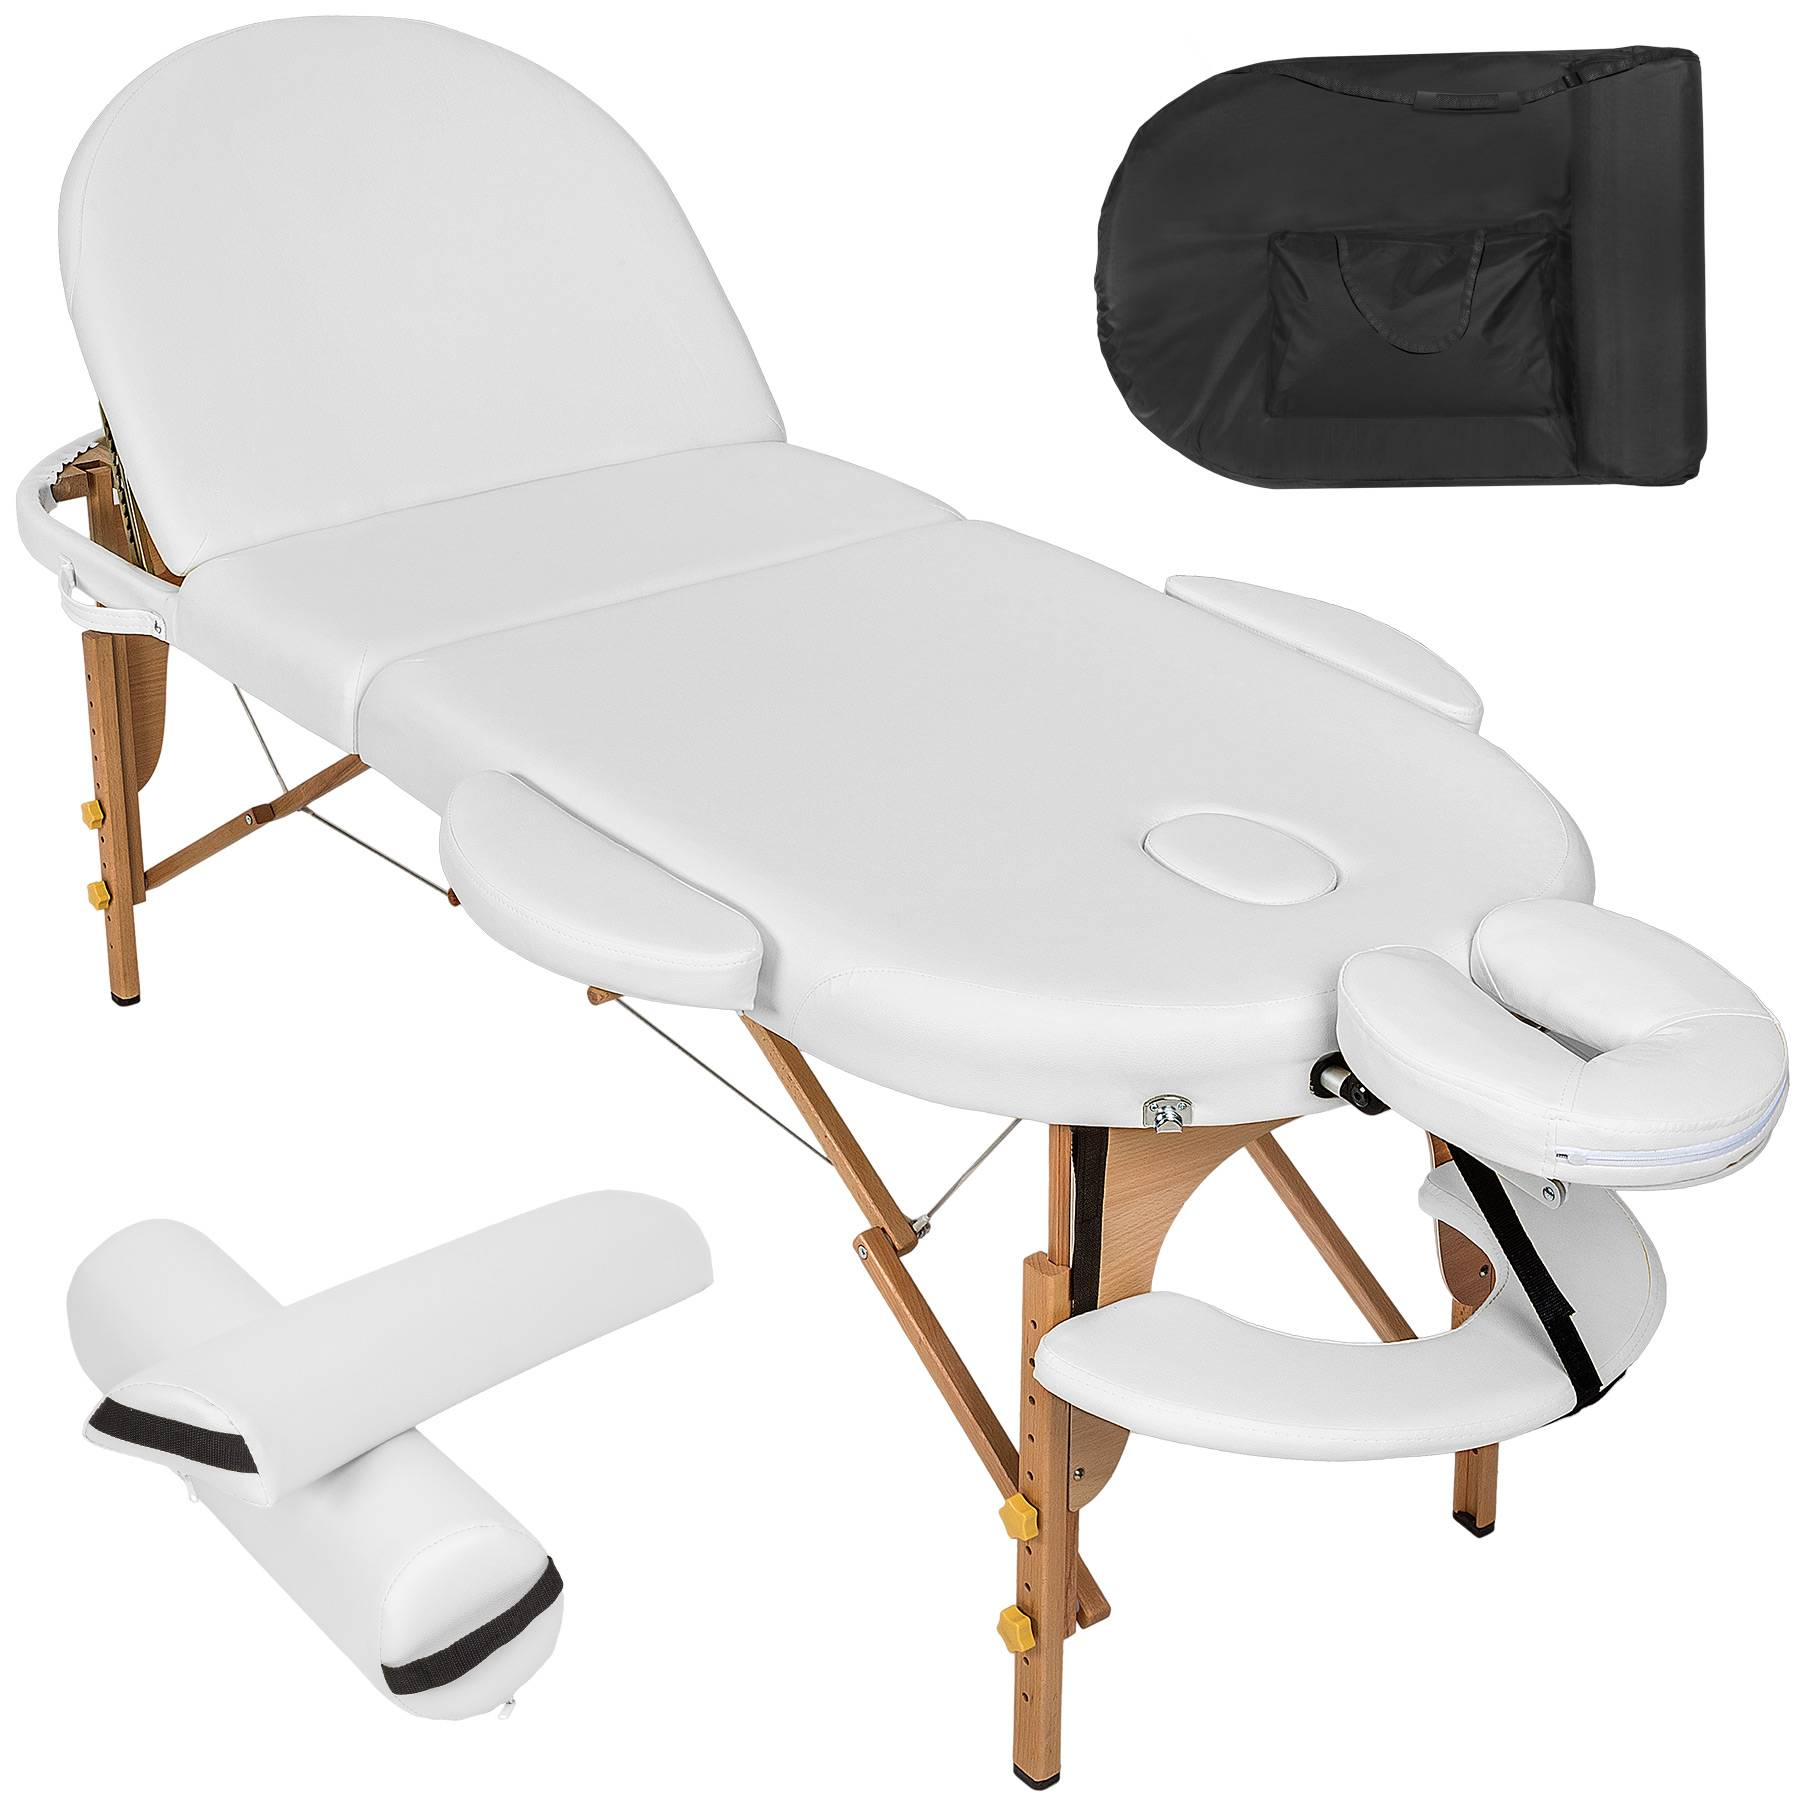 tectake Massage table oval with 5 cm padding + rolls - white